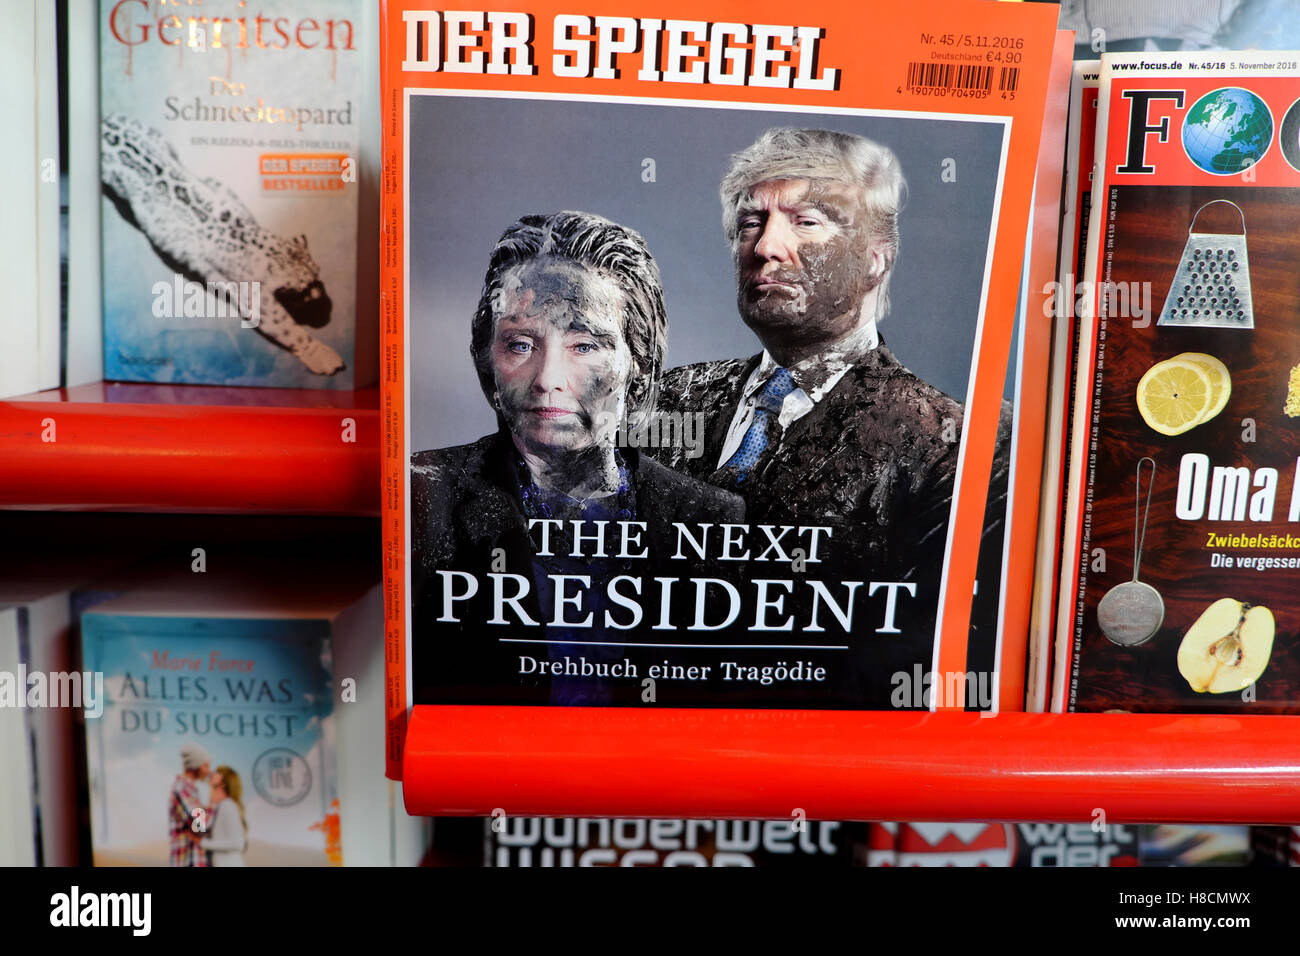 Der Spiegel German magazine and newspaper front cover at newsagent covering American US election Wahl Berlin November - Stock Image